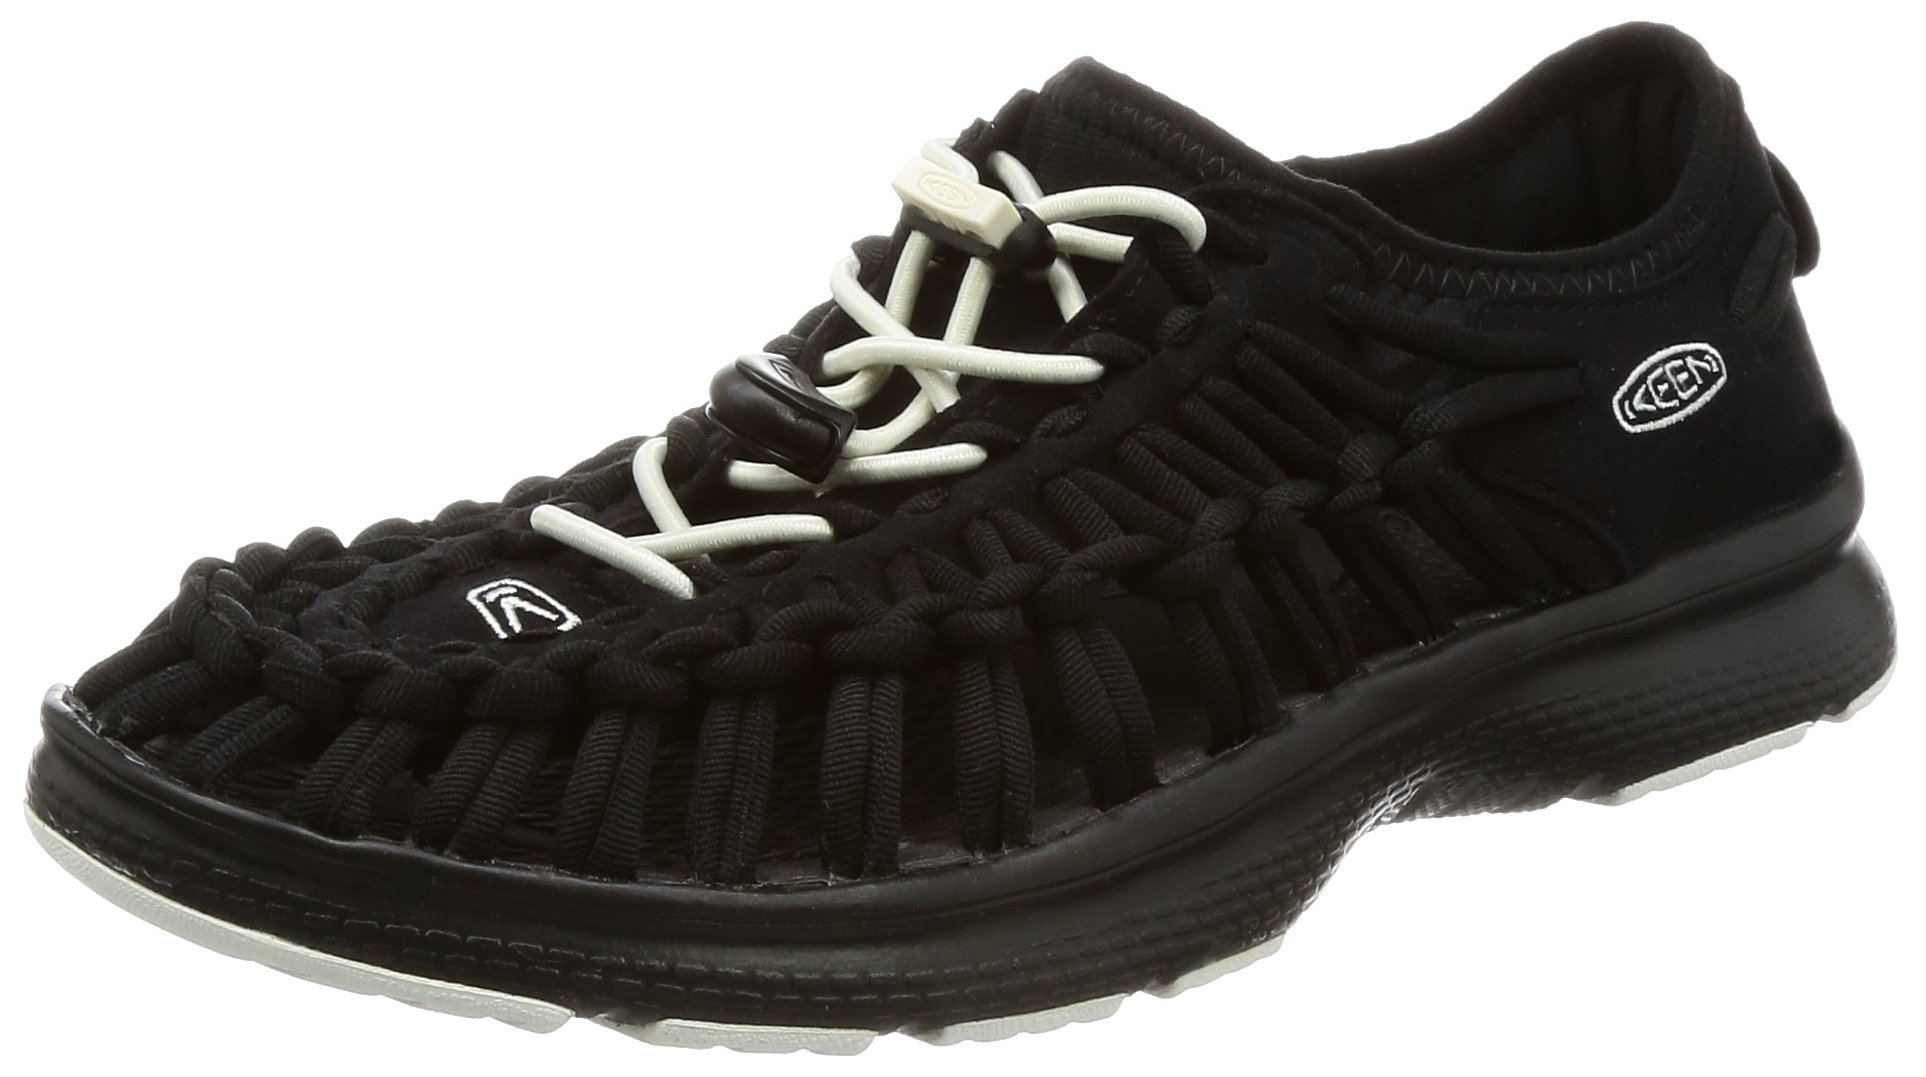 KEEN Uneek O2 Sandal - Women's Black/White, 6.0